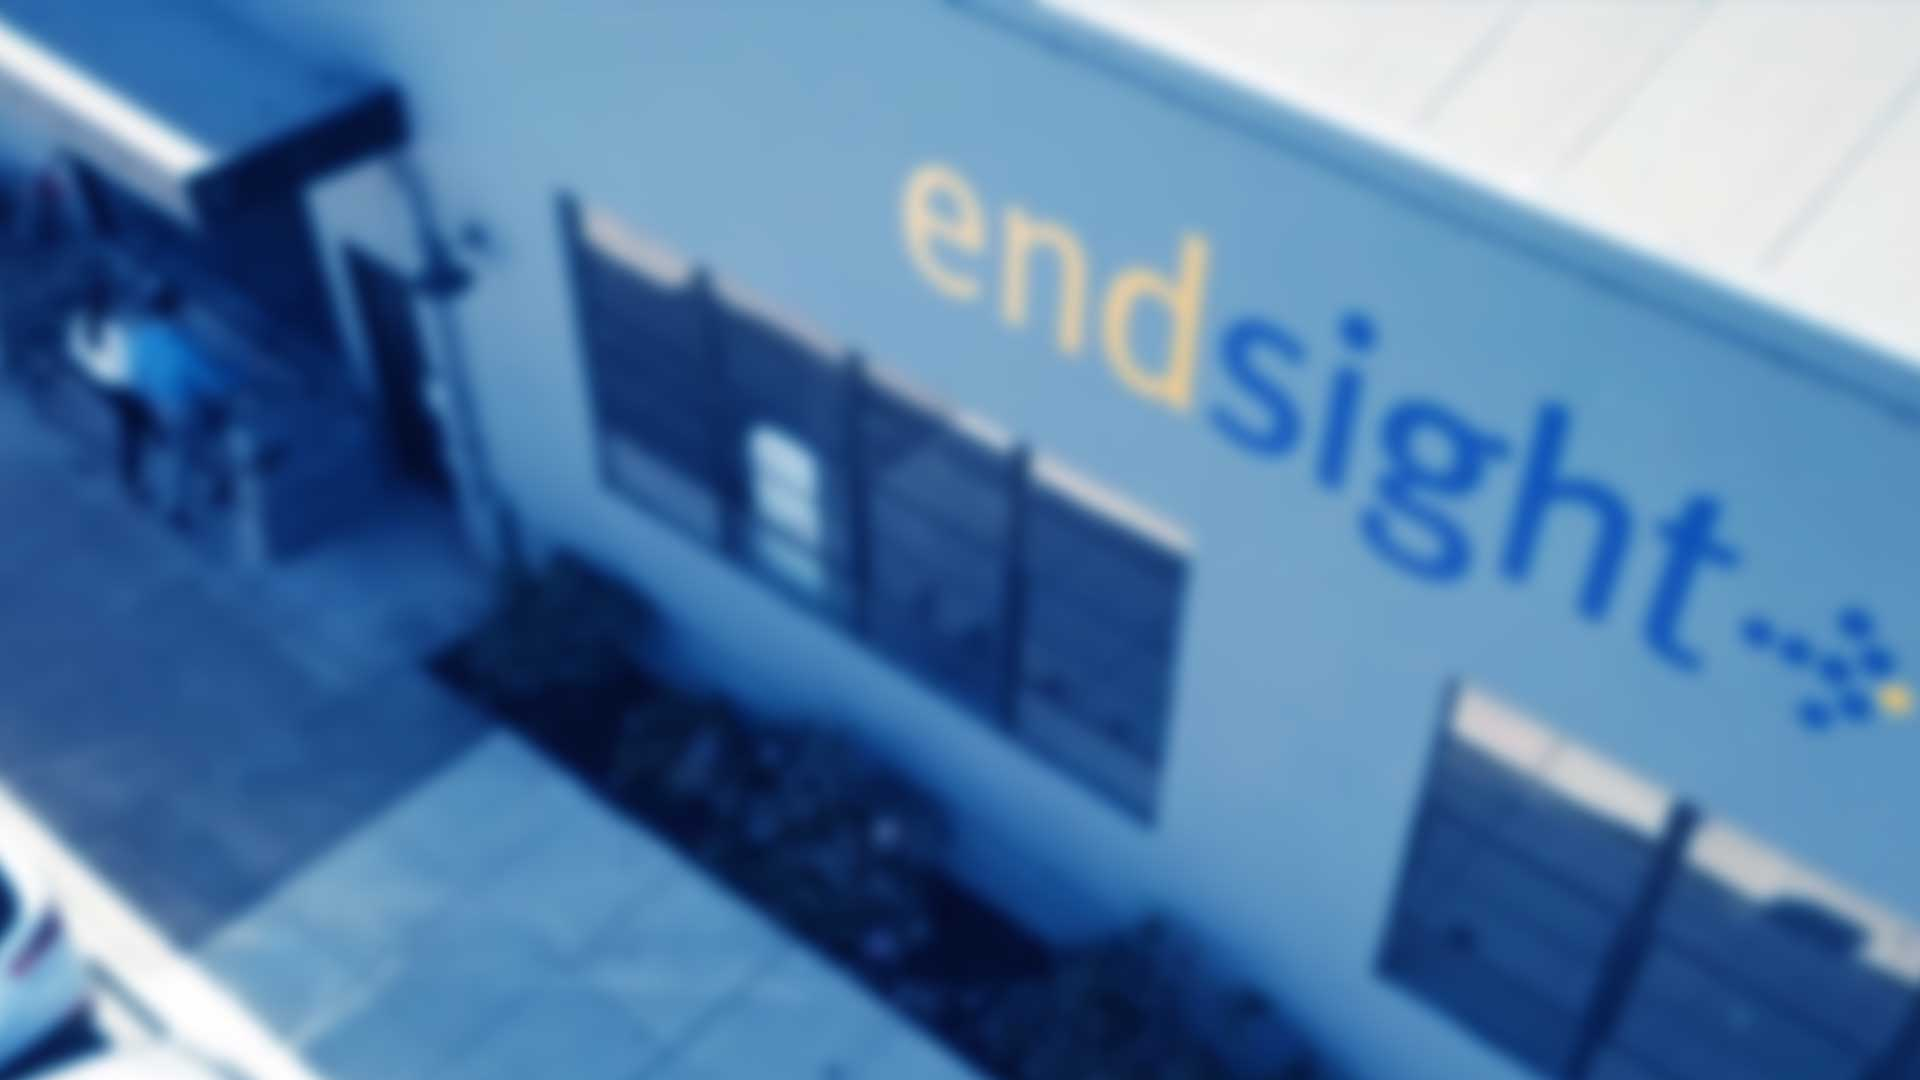 Video thumbnail for the Endsight end user orientation video. Click to watch the video.